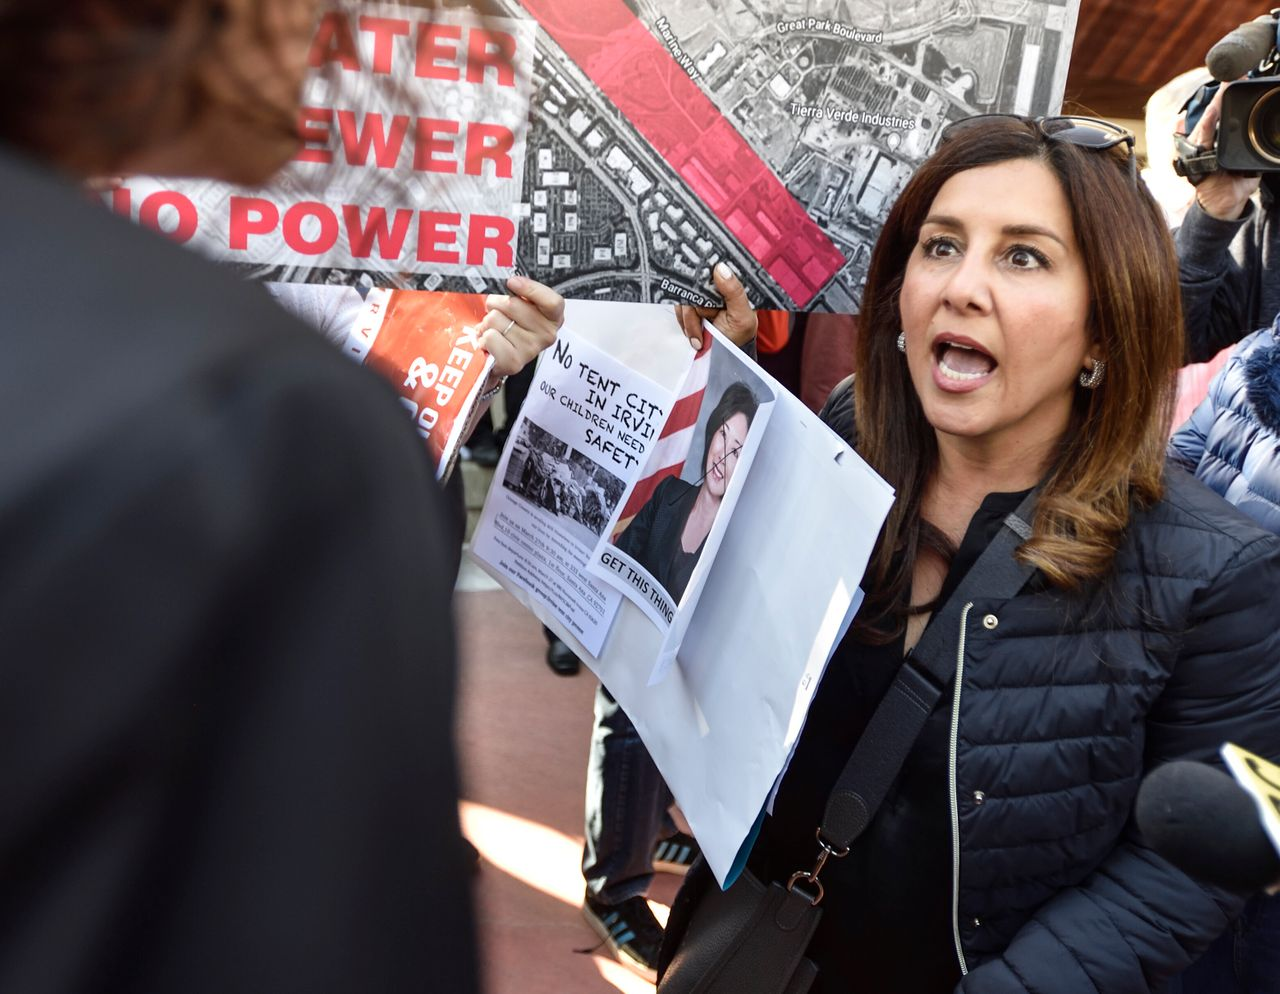 An opponent of a proposed homeless shelter argues with a supporter in Irvine, California.